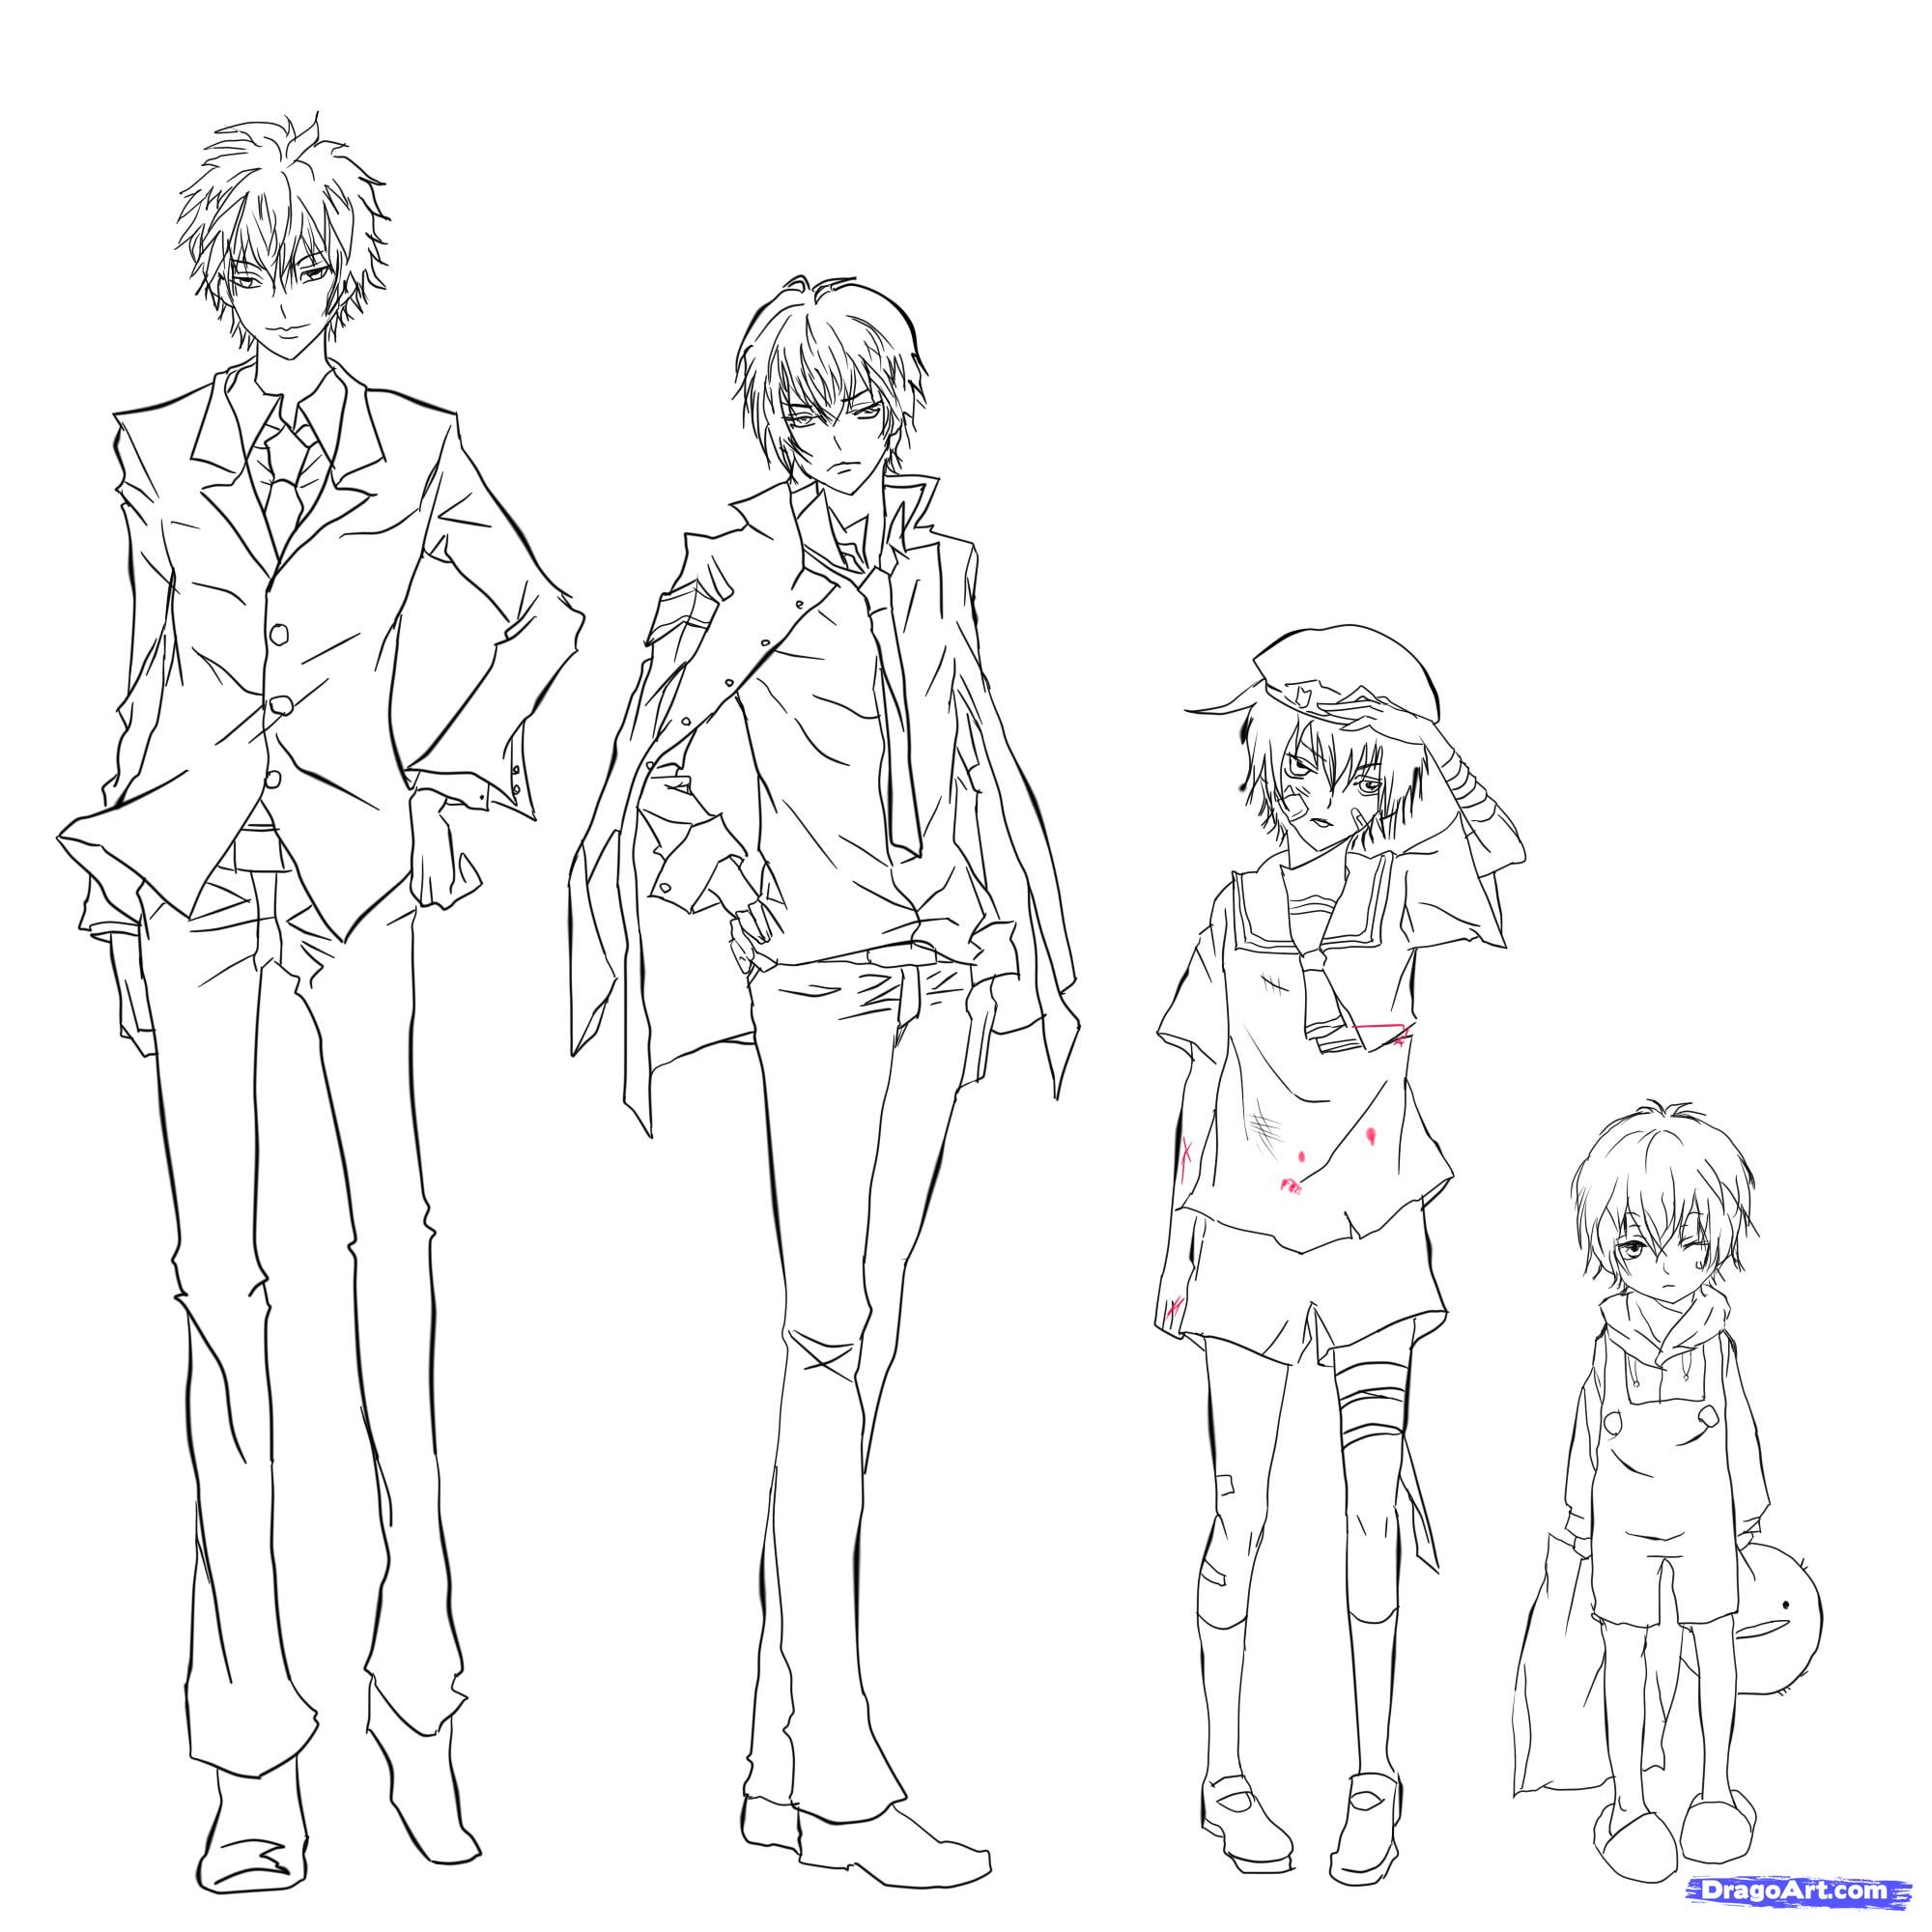 2000x2000 Pencil Drawn Anime Characters Body Outline